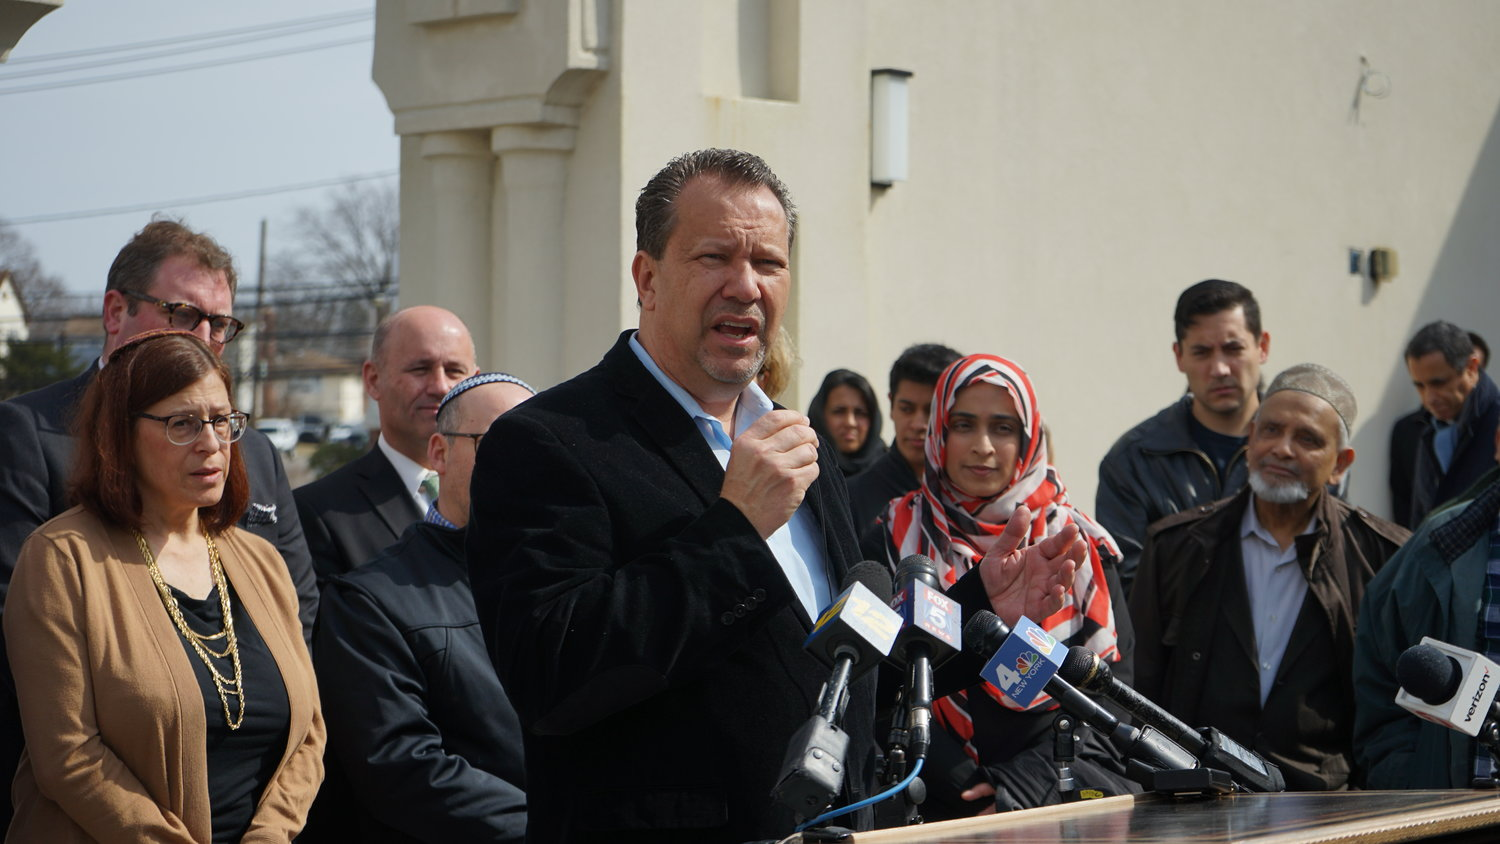 Valley Stream Mayor Ed Fare spoke of how welcoming the Muslim community in his neighborhood has been to him.